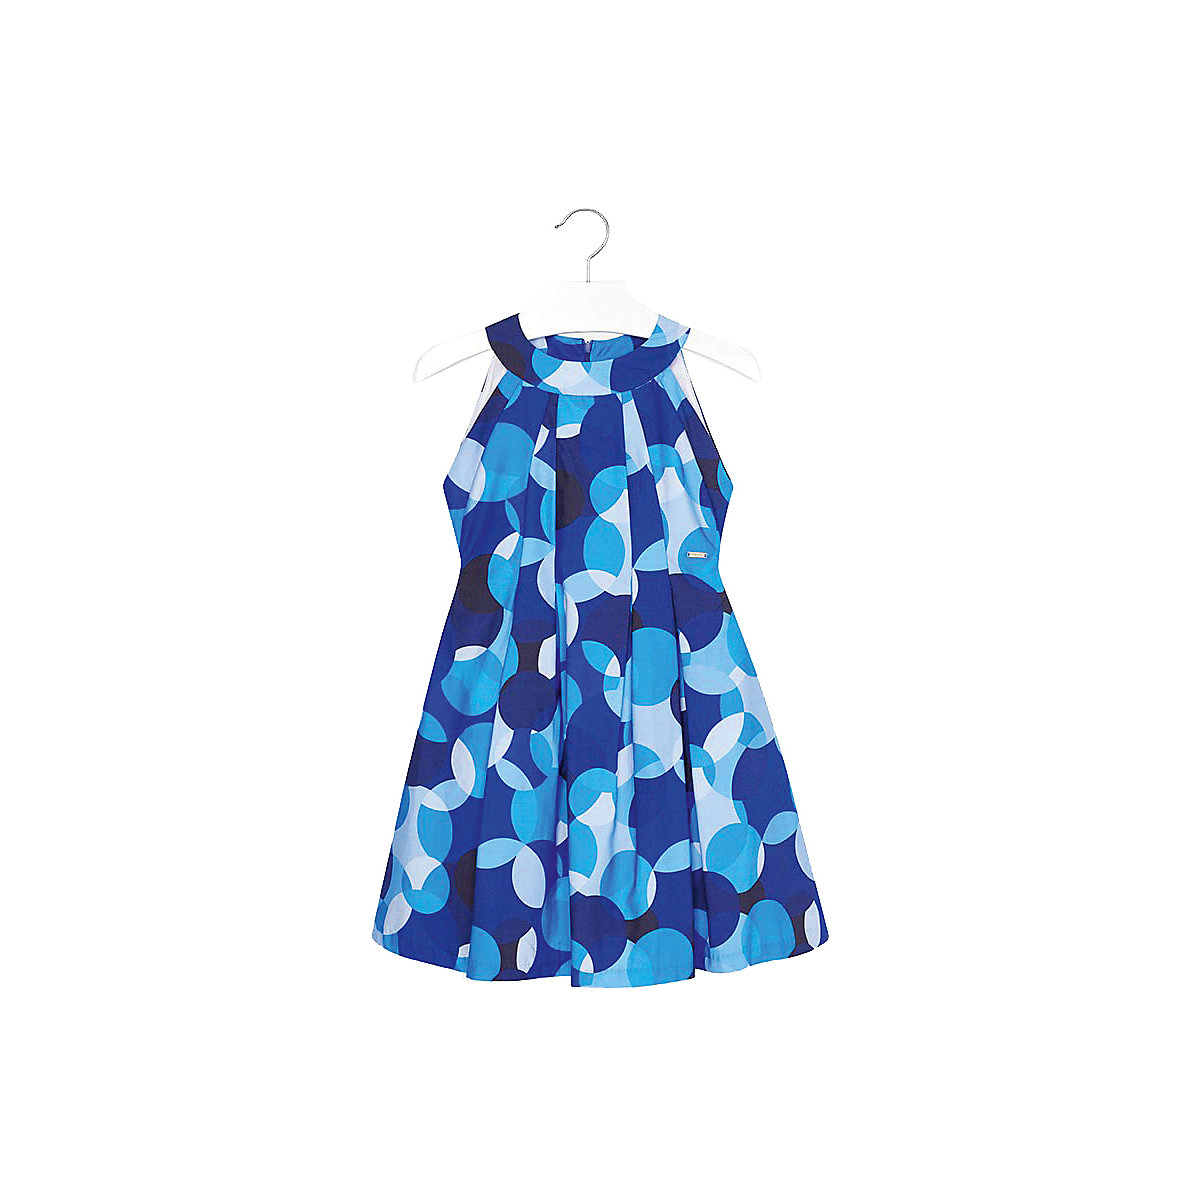 MAYORAL Dresses 10678714 Girl Children fitted pleated skirt Blue Cotton Casual Print Knee-Length Sleeveless Sleeve girl print drawstring top